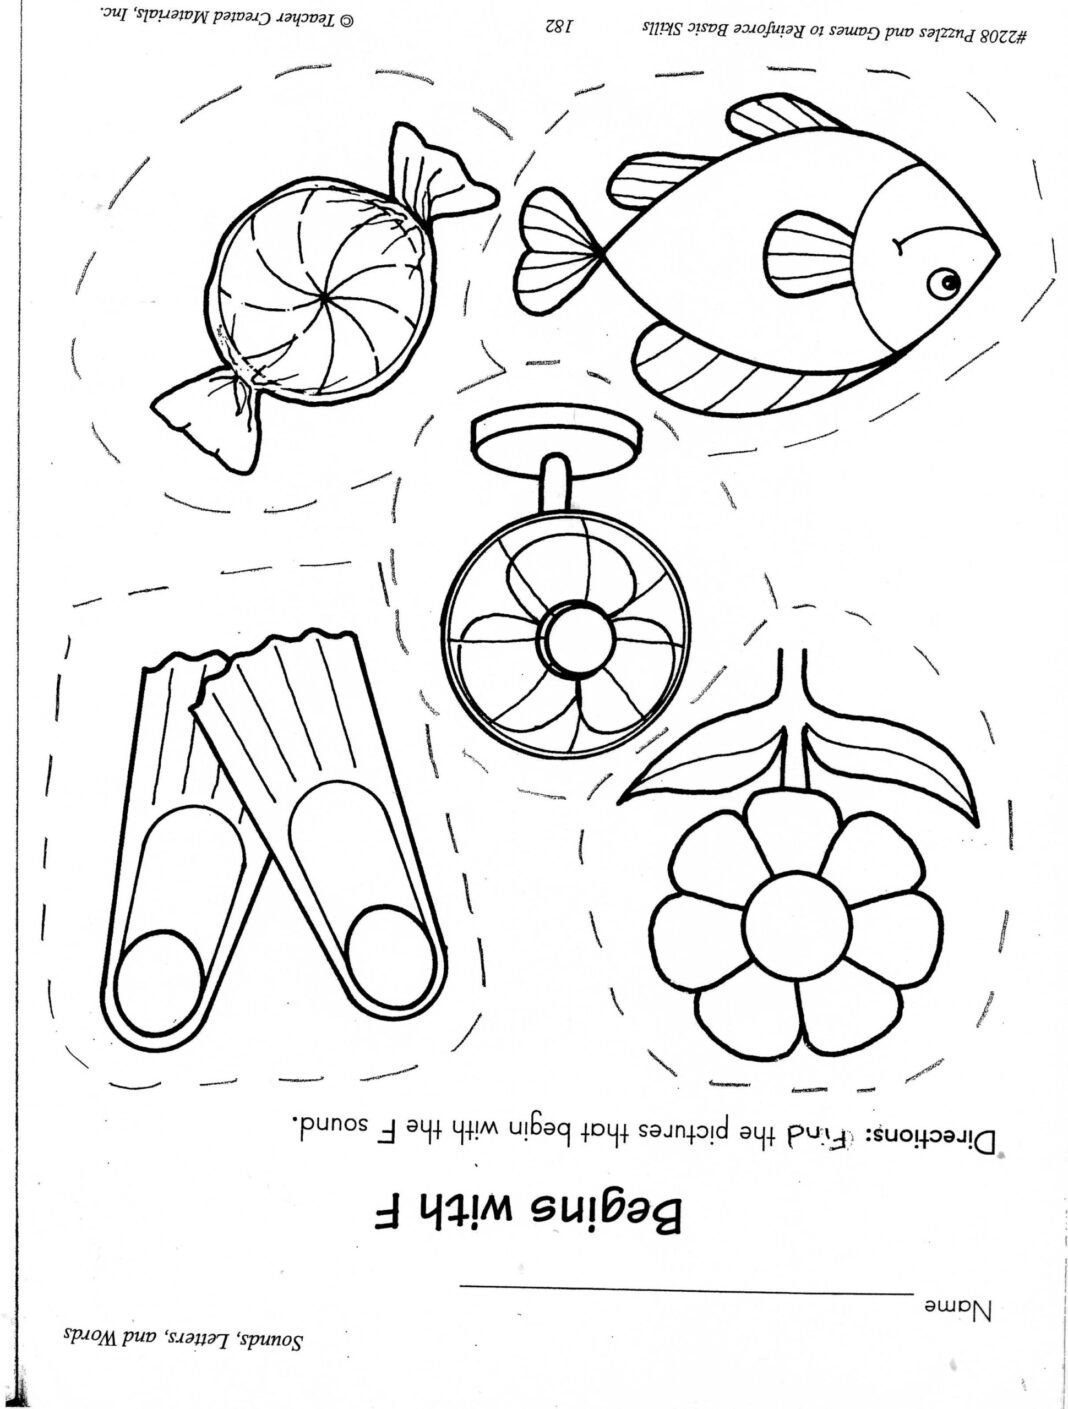 4th Grade Sequencing Worksheets 4th Grade Language Arts Worksheets – Kingandsullivan